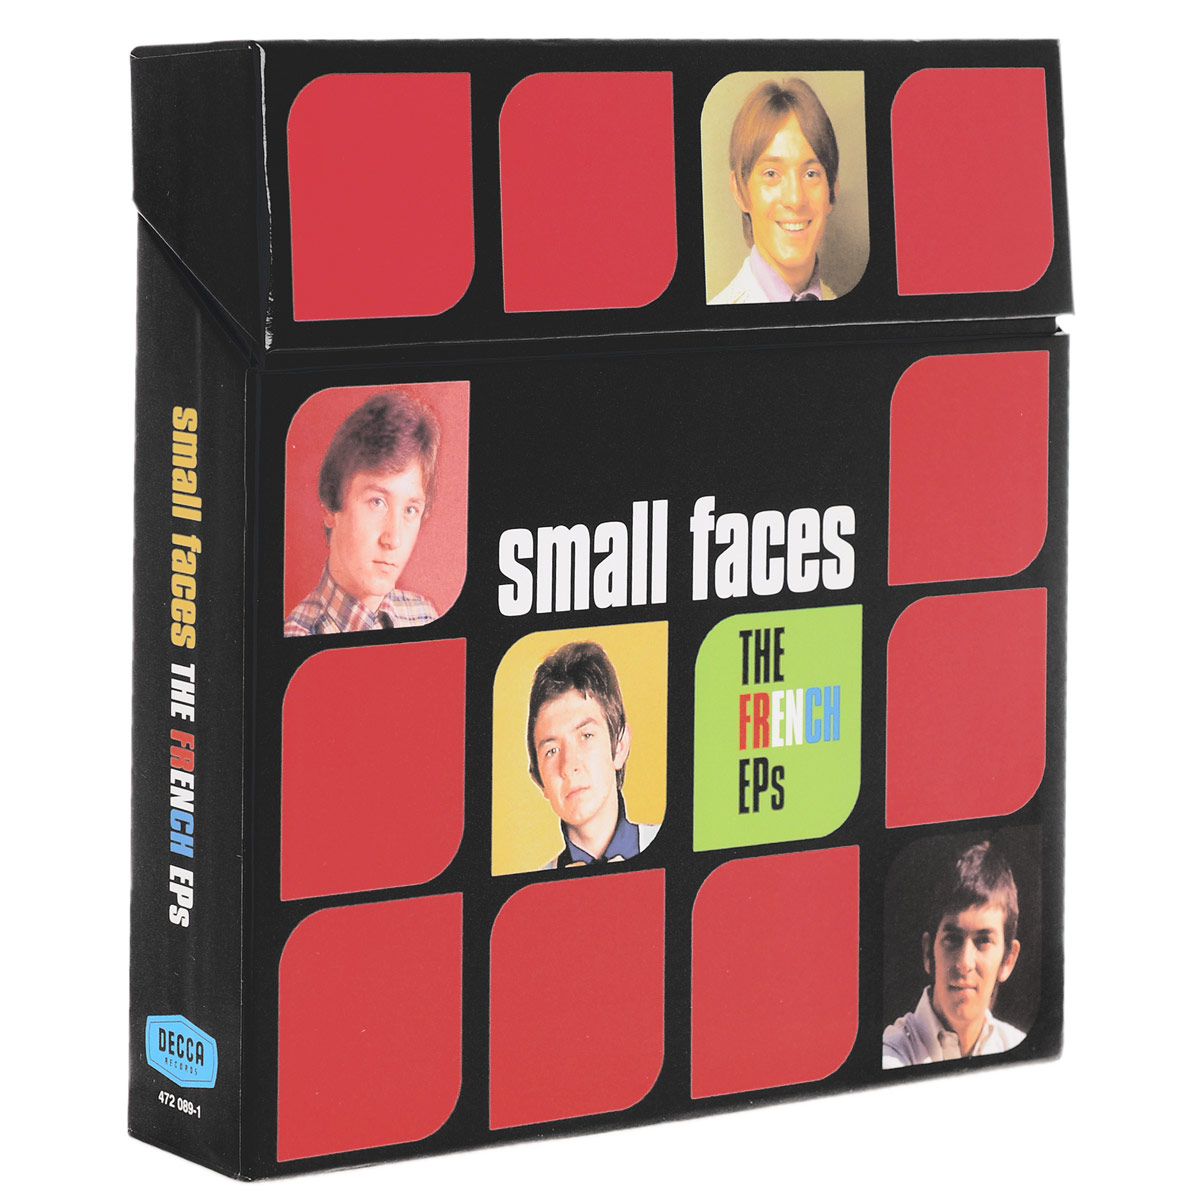 The Small Faces  .  French Eps (5 LP)